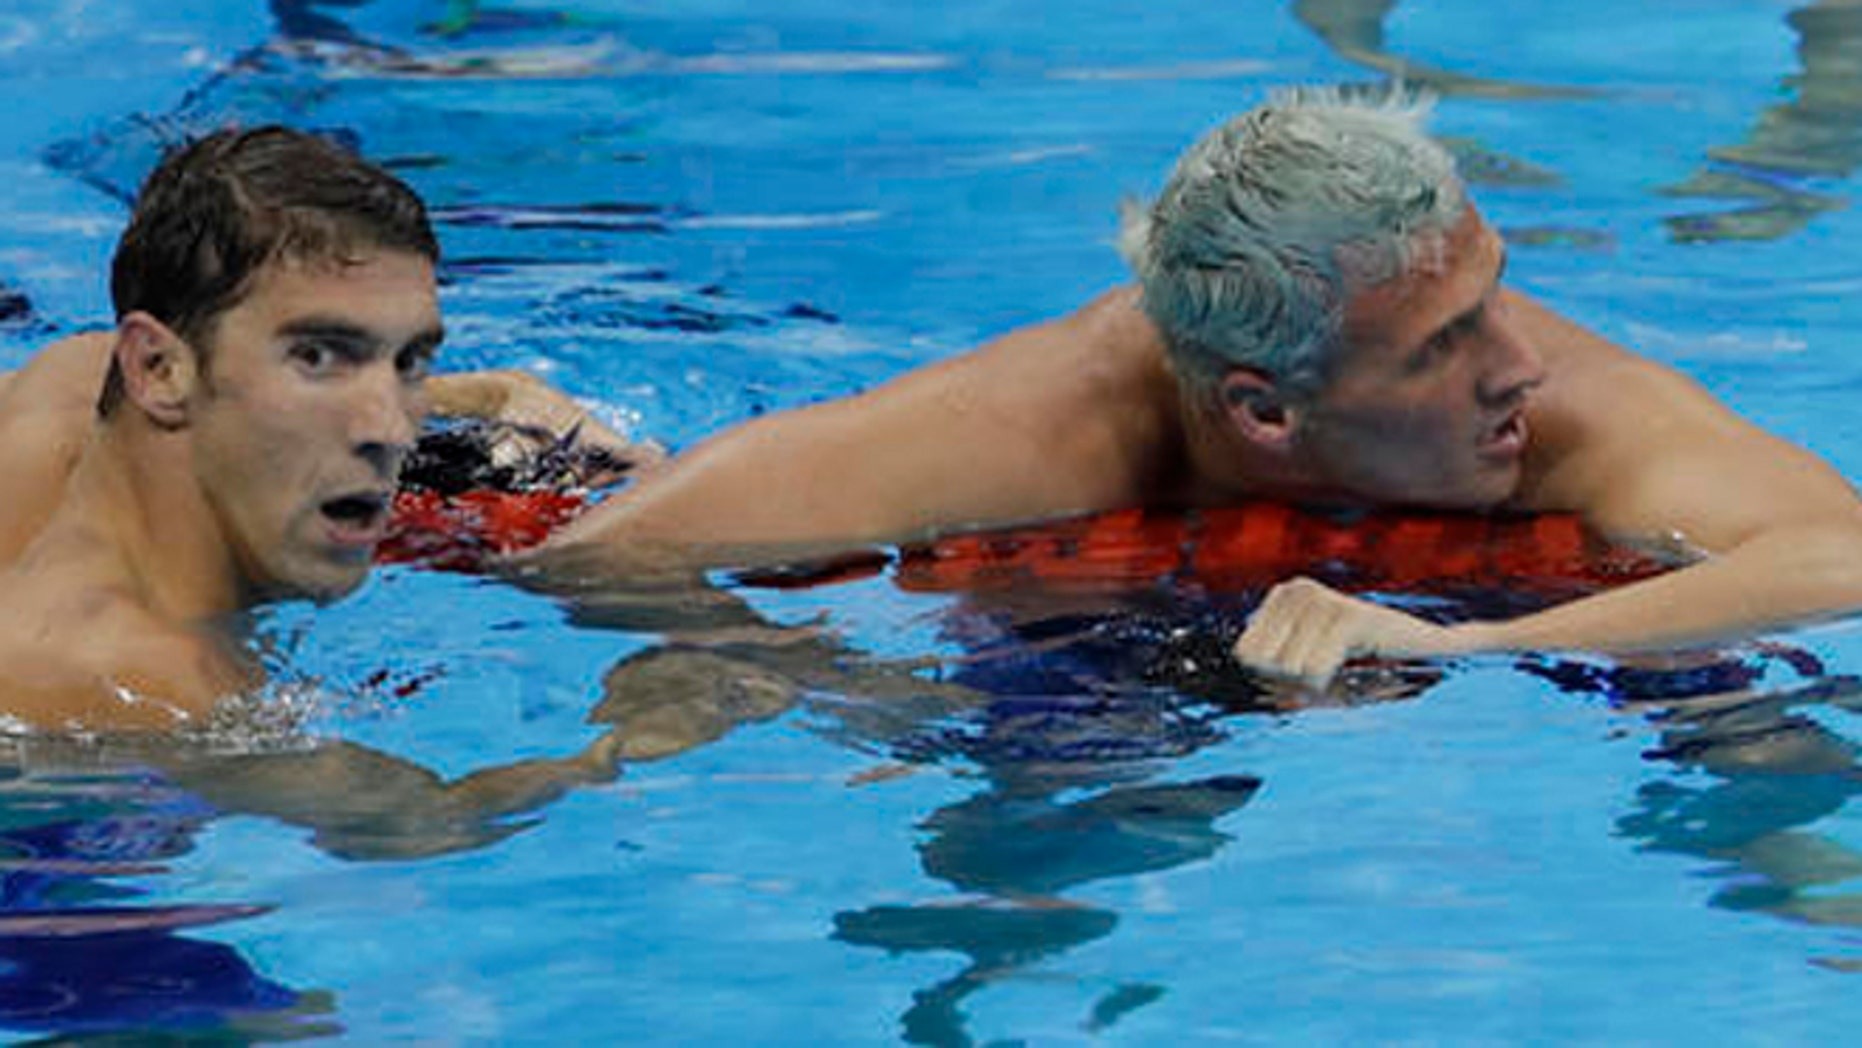 United States' Michael Phelps wins the gold medal in the men's 200-meter individual medley ahead of fifth placed United States' Ryan Lochte, right, during the swimming competitions at the 2016 Summer Olympics, Thursday, Aug. 11, 2016, in Rio de Janeiro, Brazil. (AP Photo/Natacha Pisarenko)